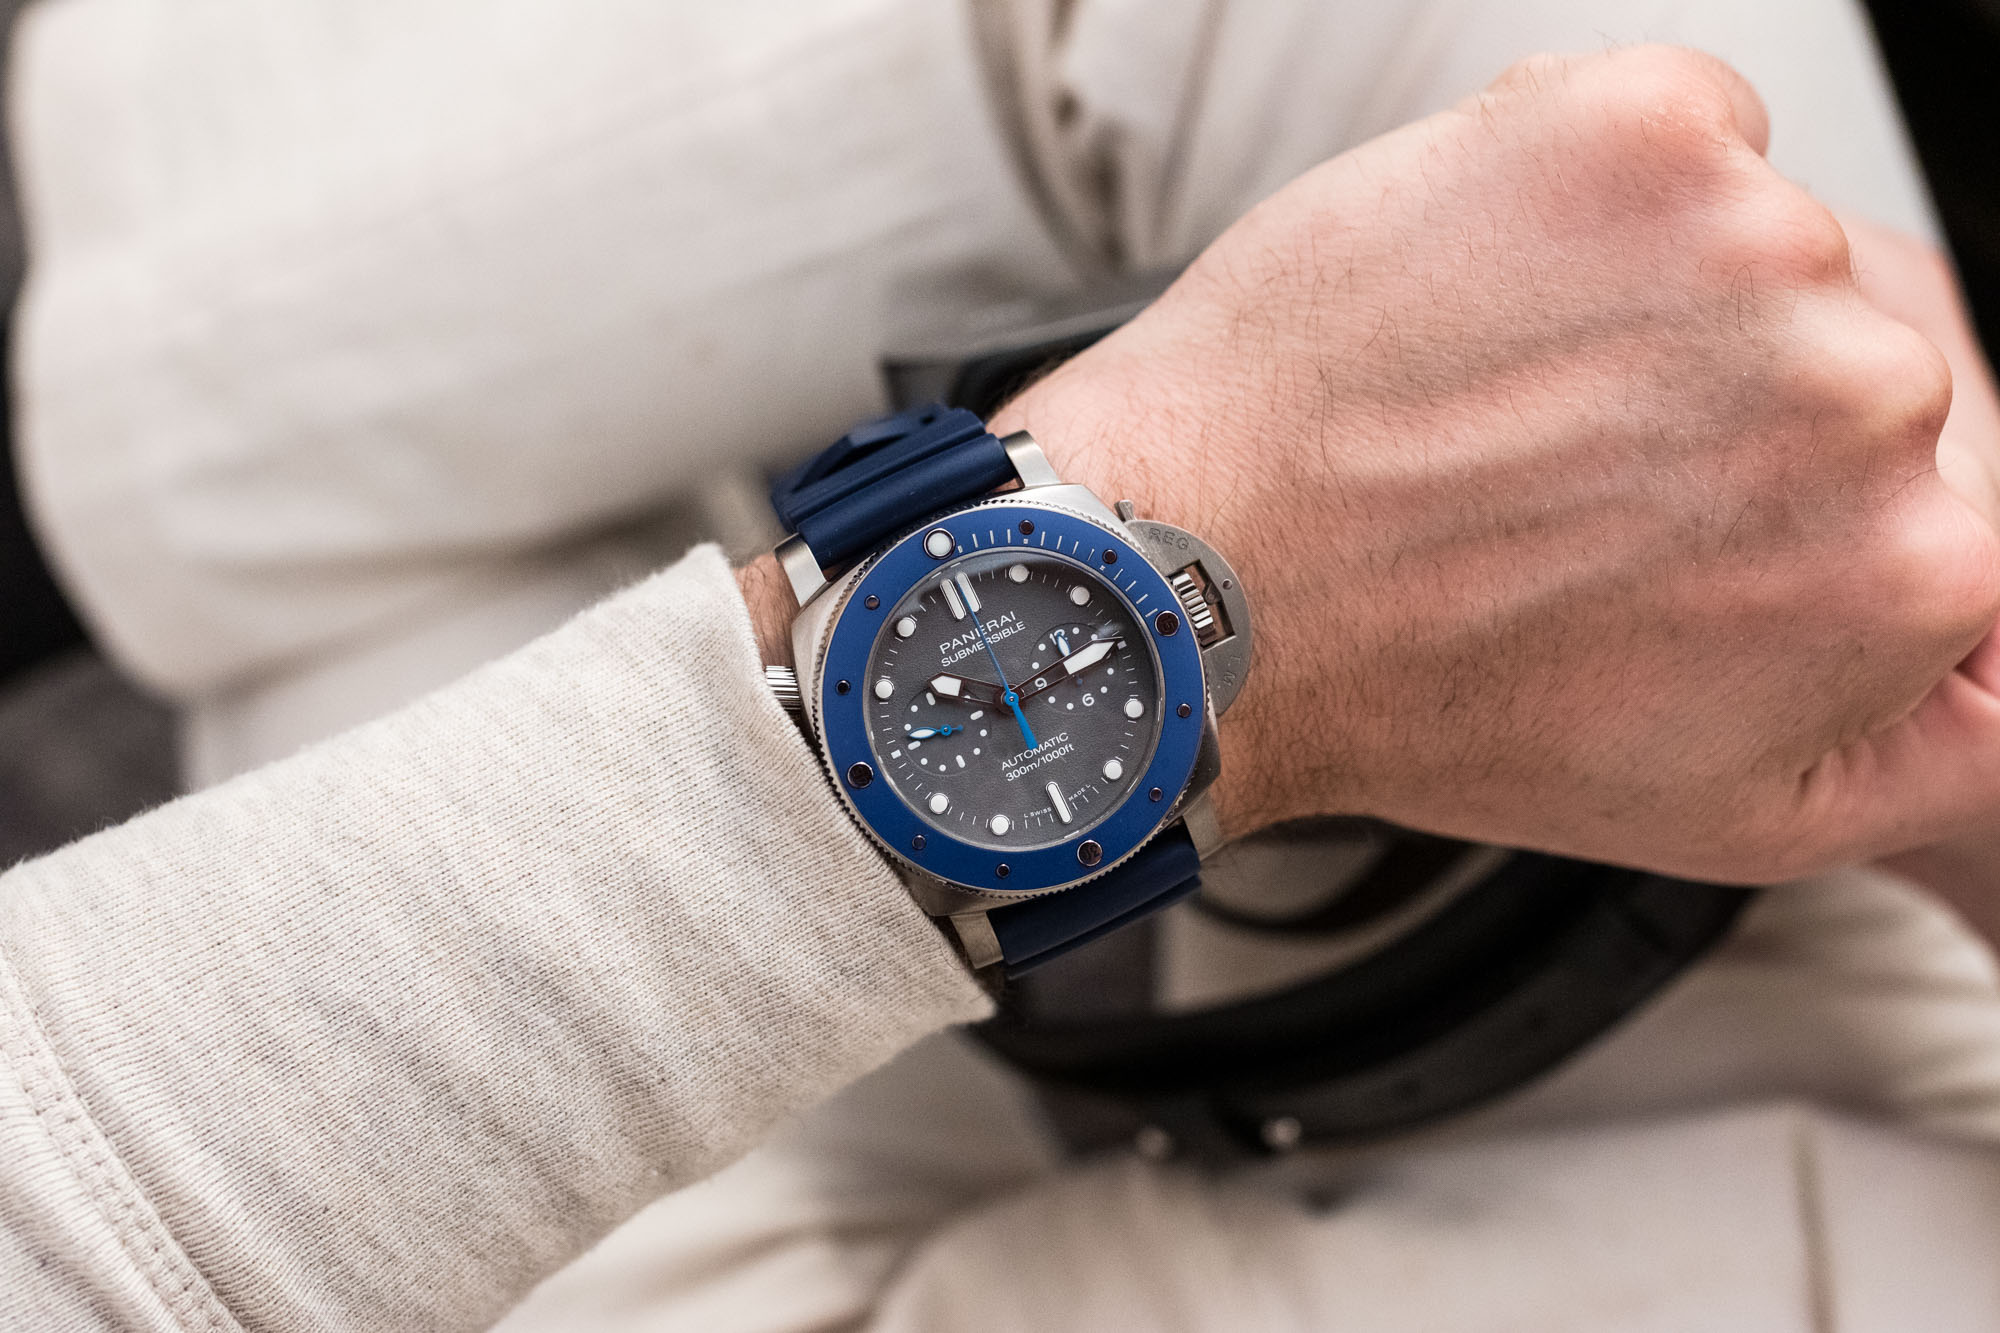 Panerai Submersible Chronographe Guillaume Nery